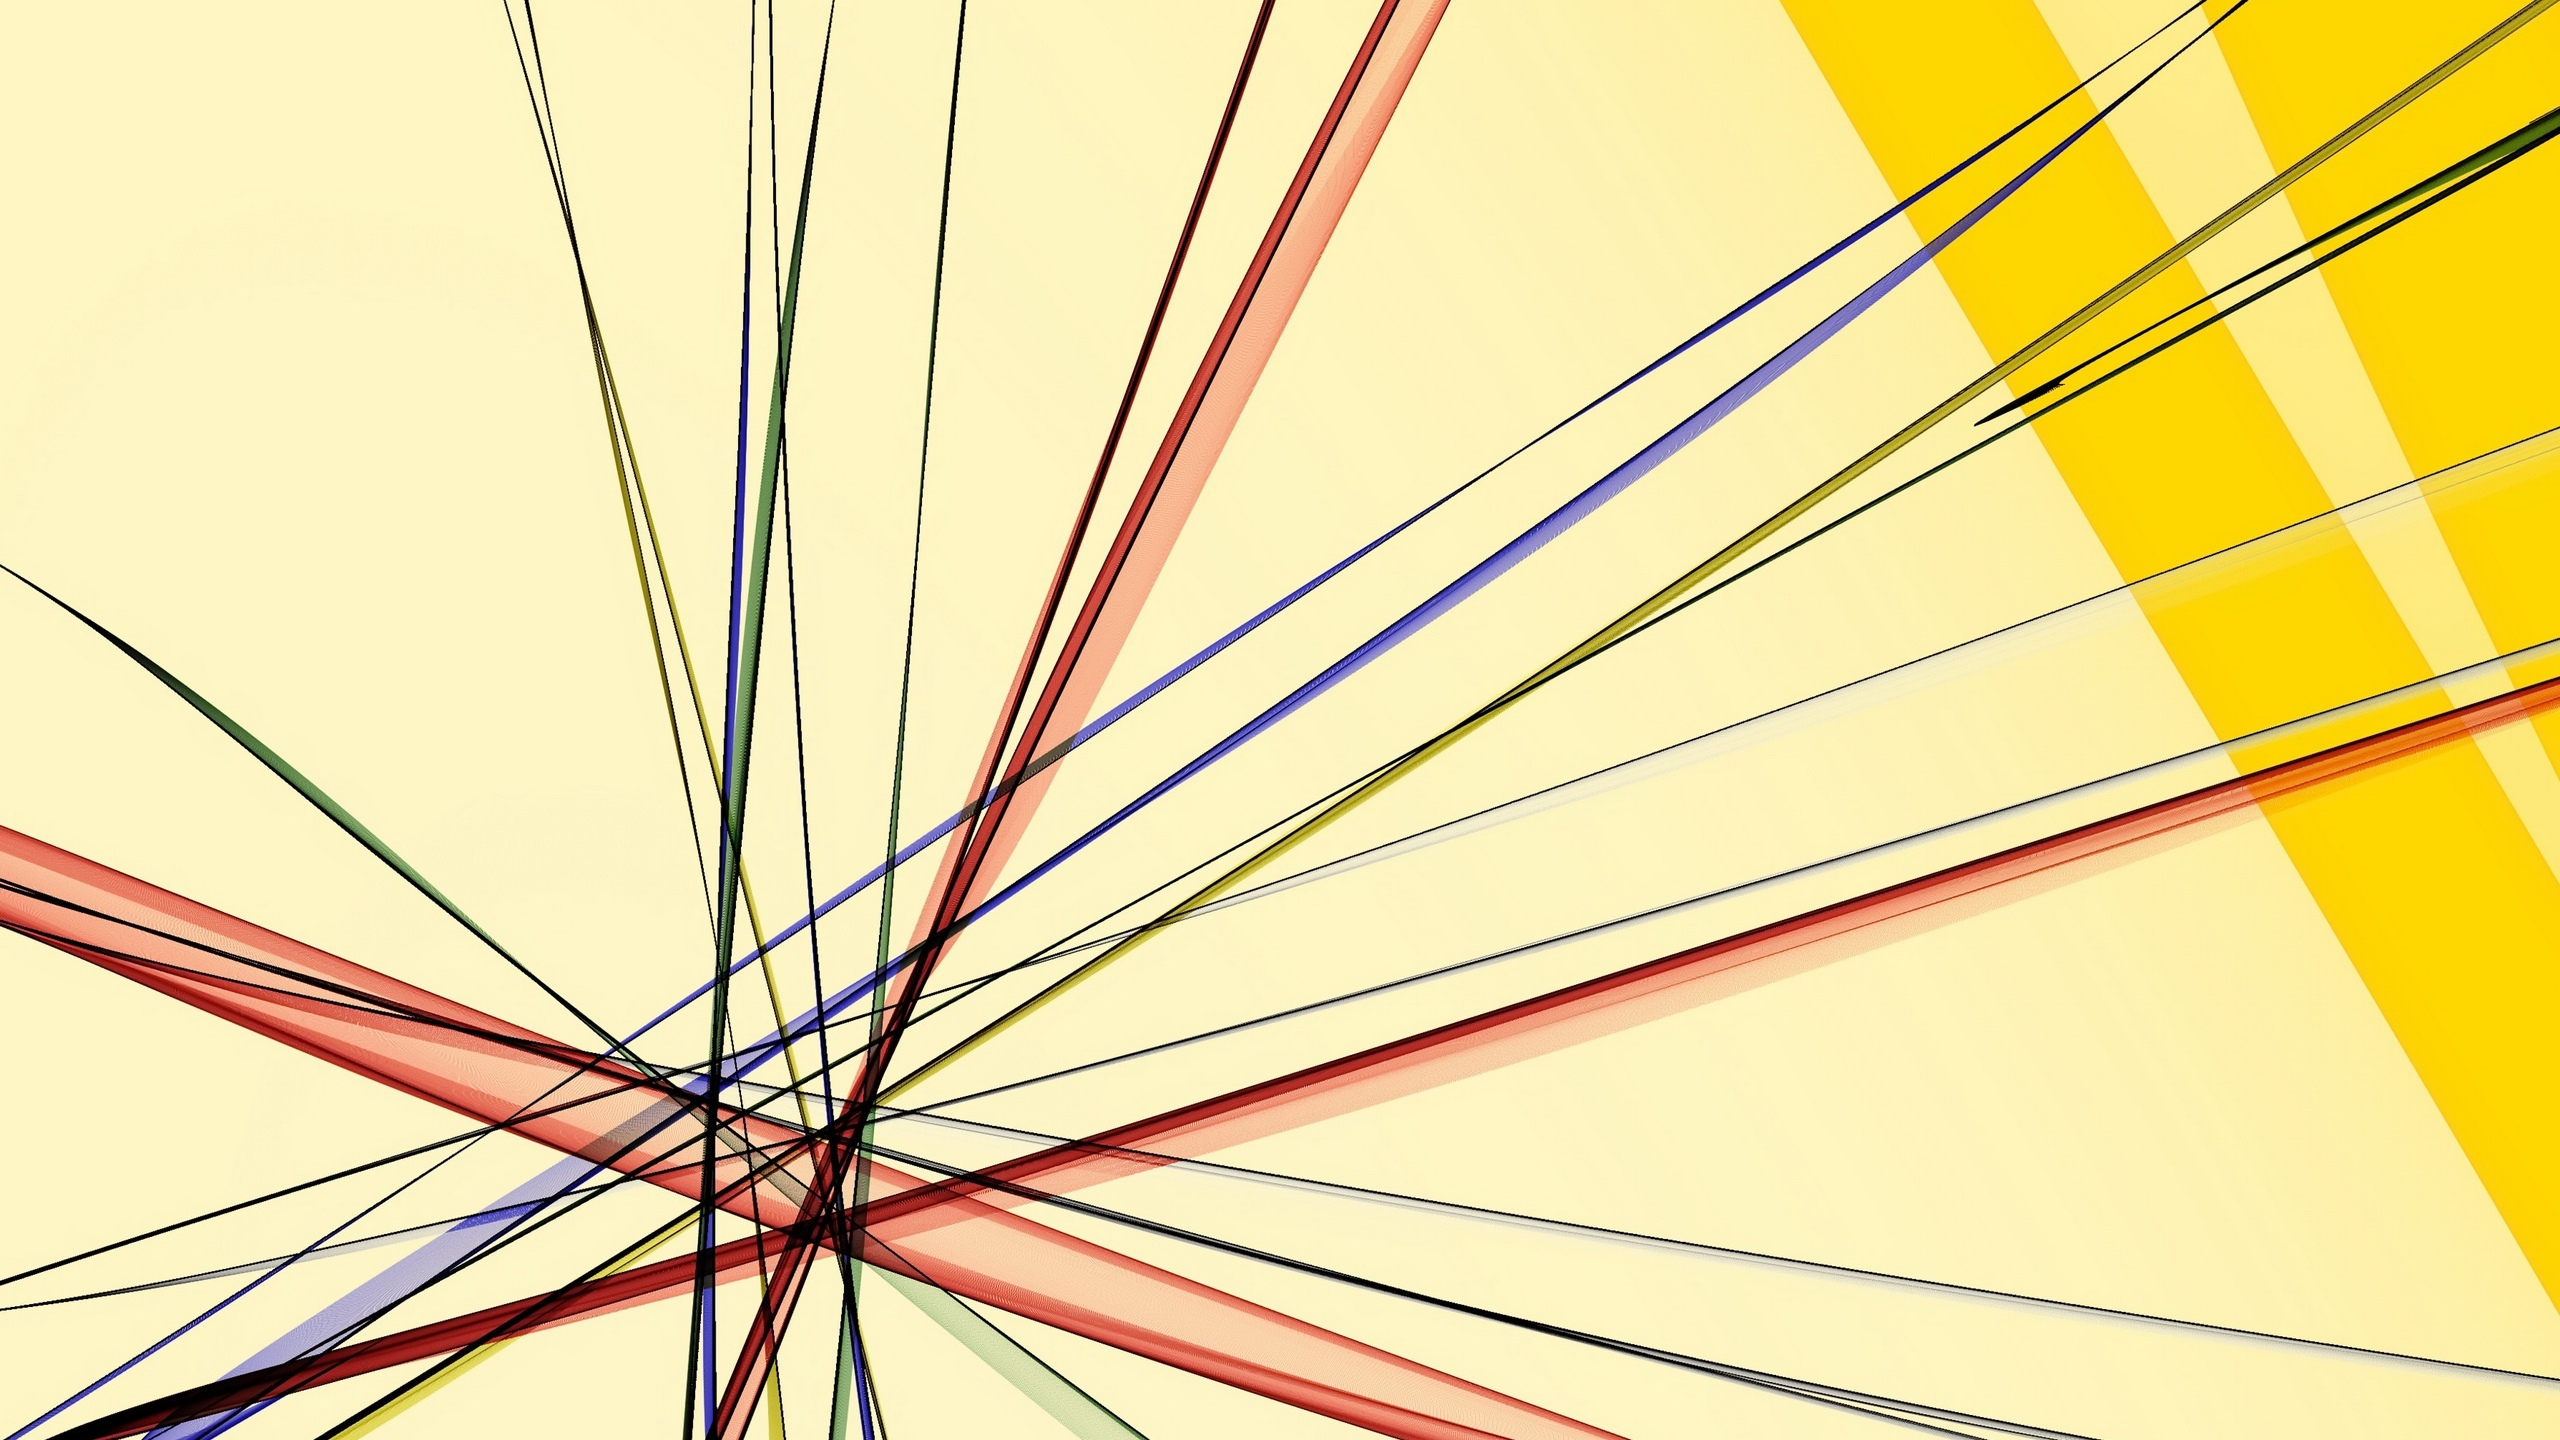 Abstract background, colorful lines 2560x1440 wallpaper